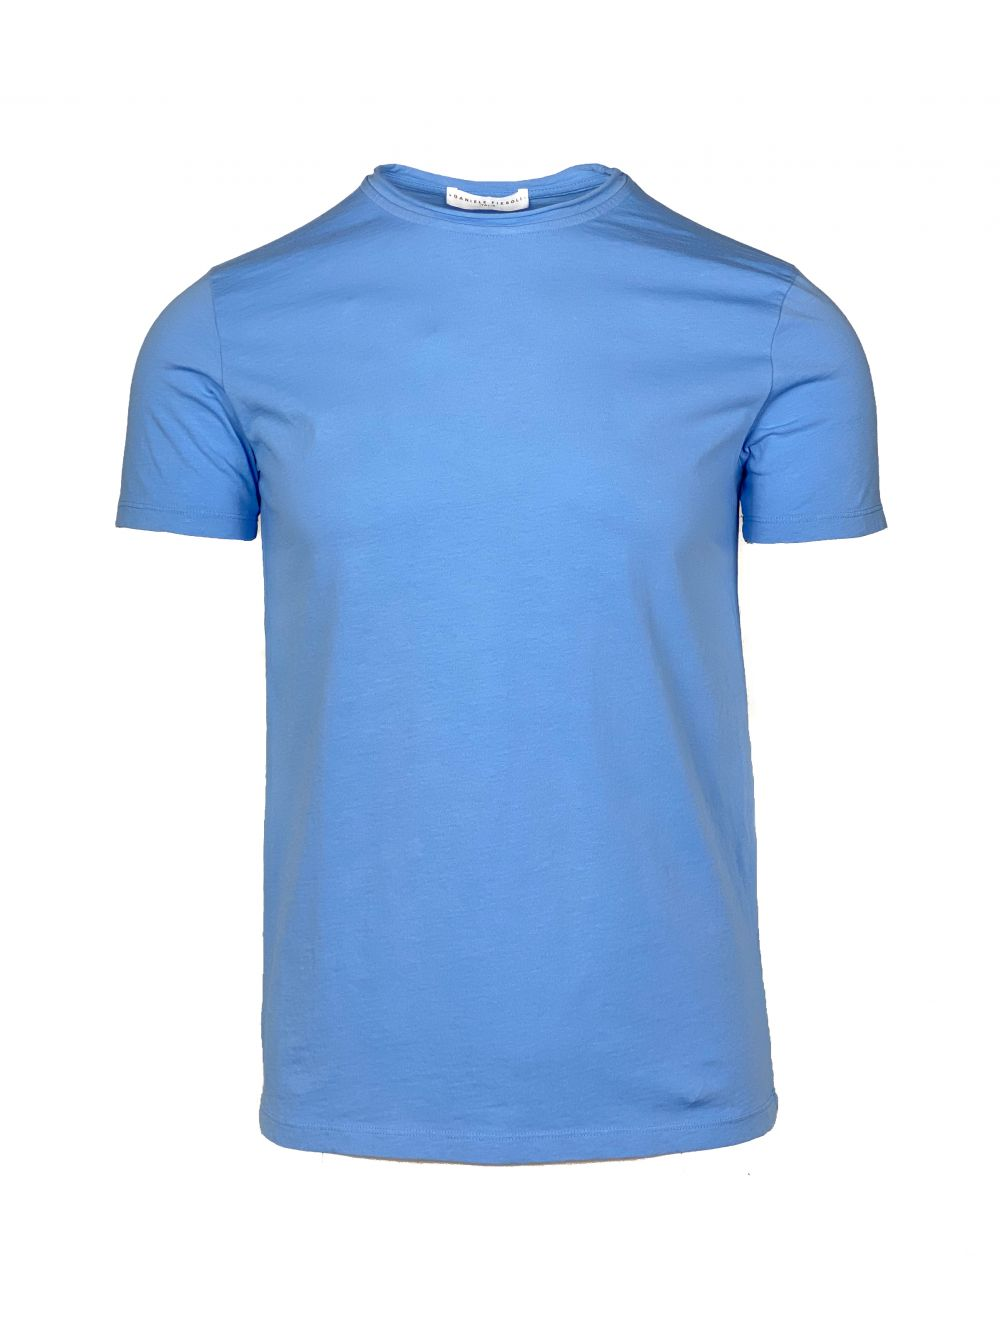 Daniele Fiesoli T-Shirt - Light Blue